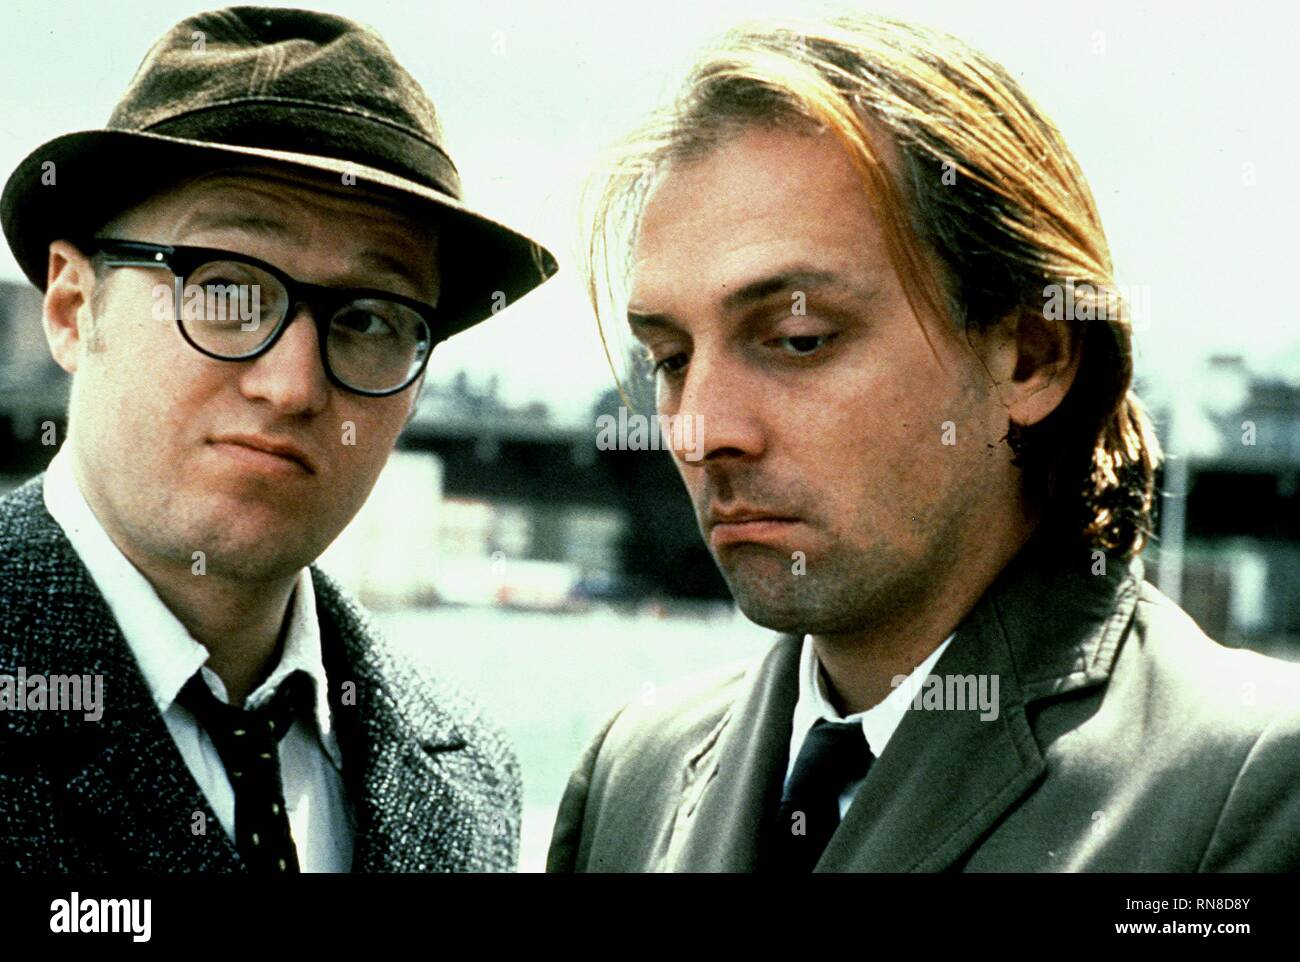 ADE EDMONDSON,RIK MAYALL, BOTTOM, 1991 - Stock Image